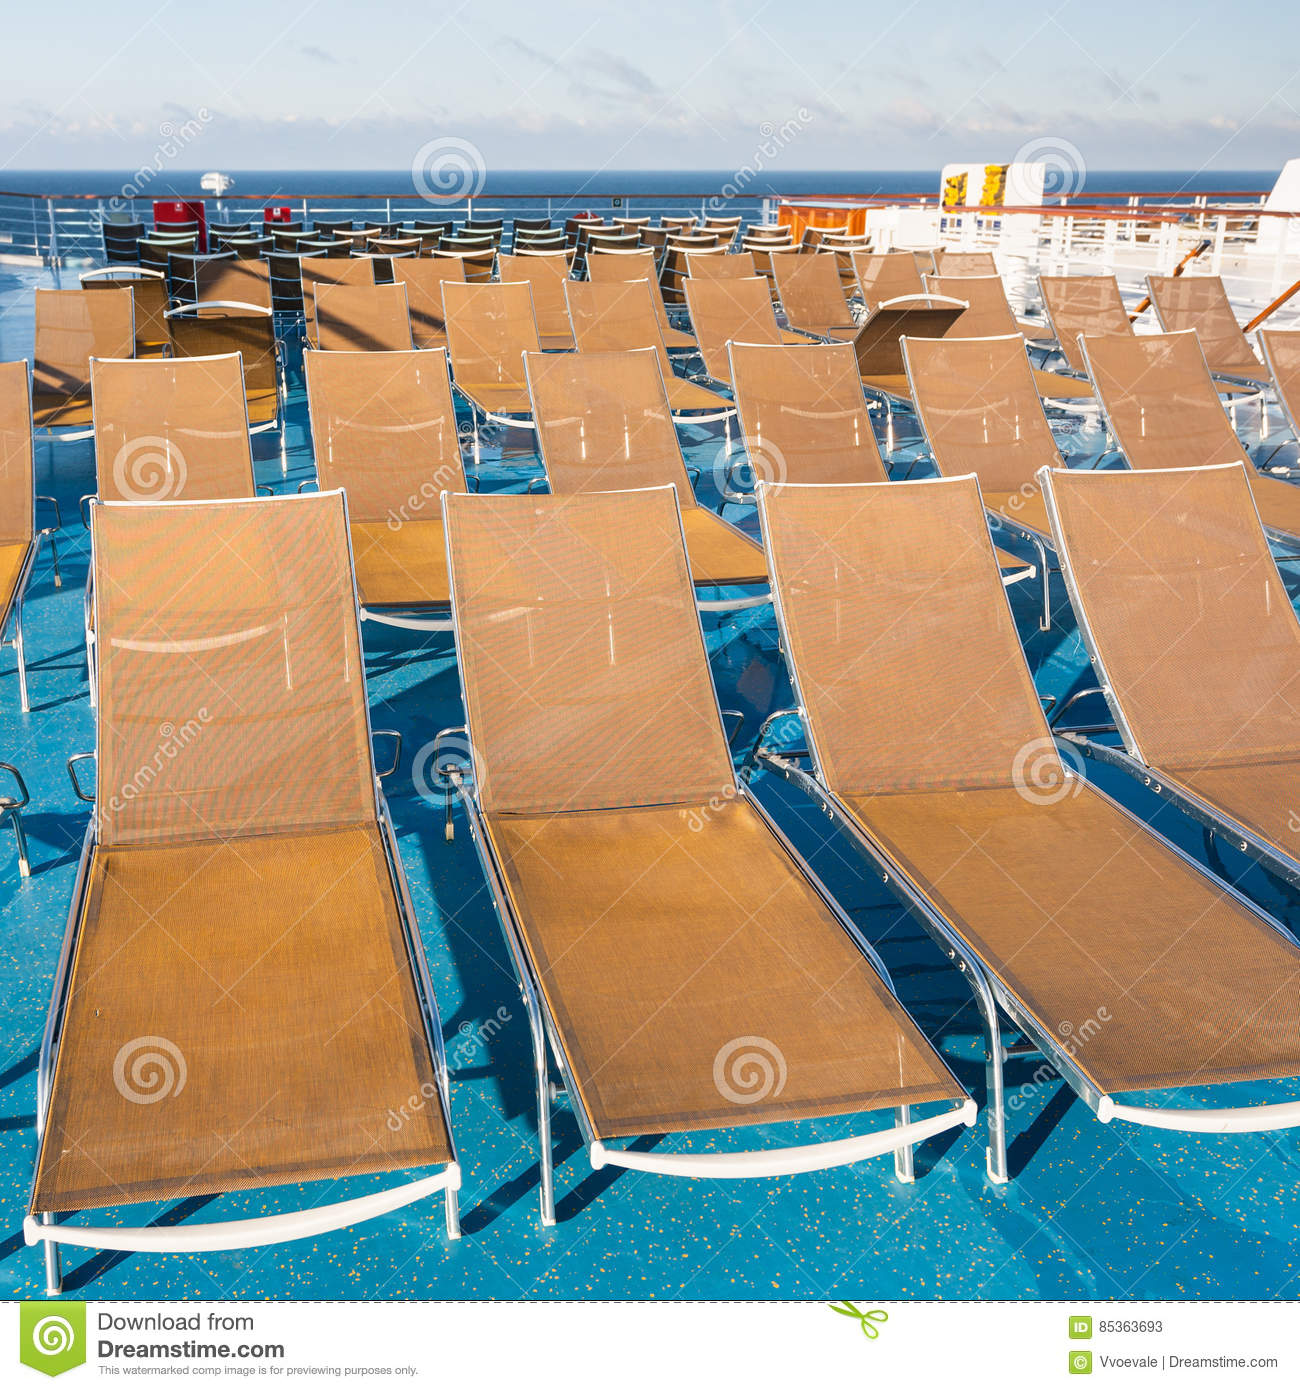 Sunbathing Chairs Many Empty Sunbathing Chairs On Upper Deck Stock Image